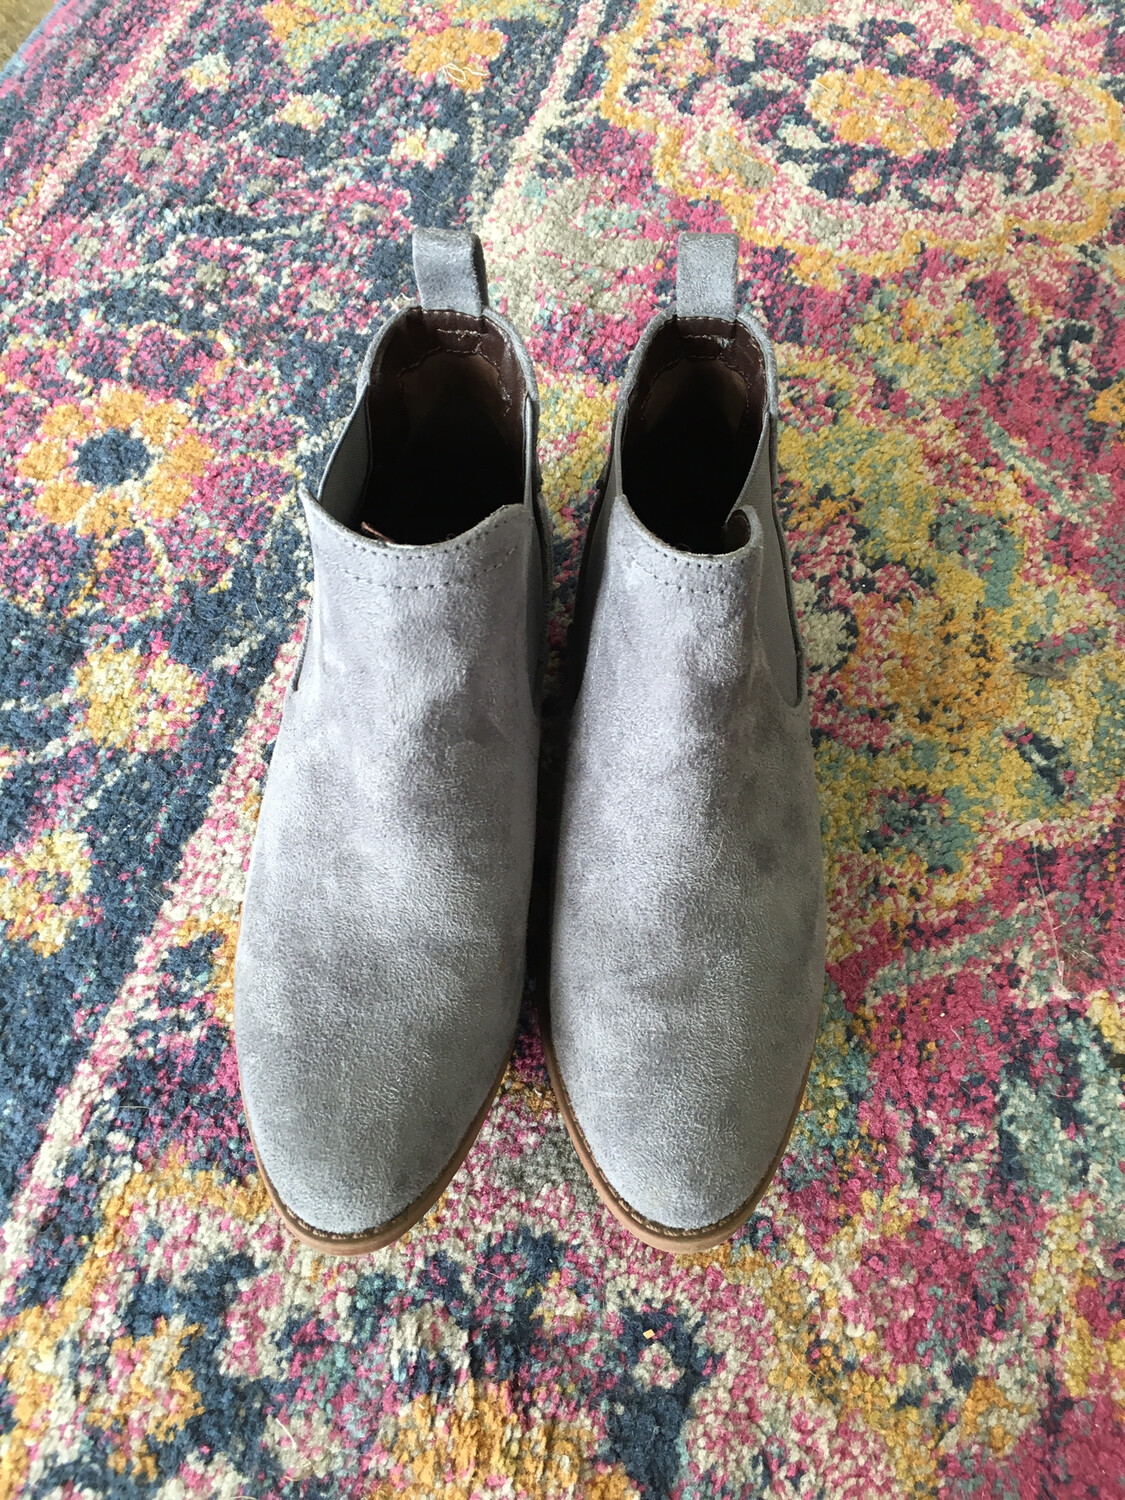 Qupid Grey Booties - Size 7.5